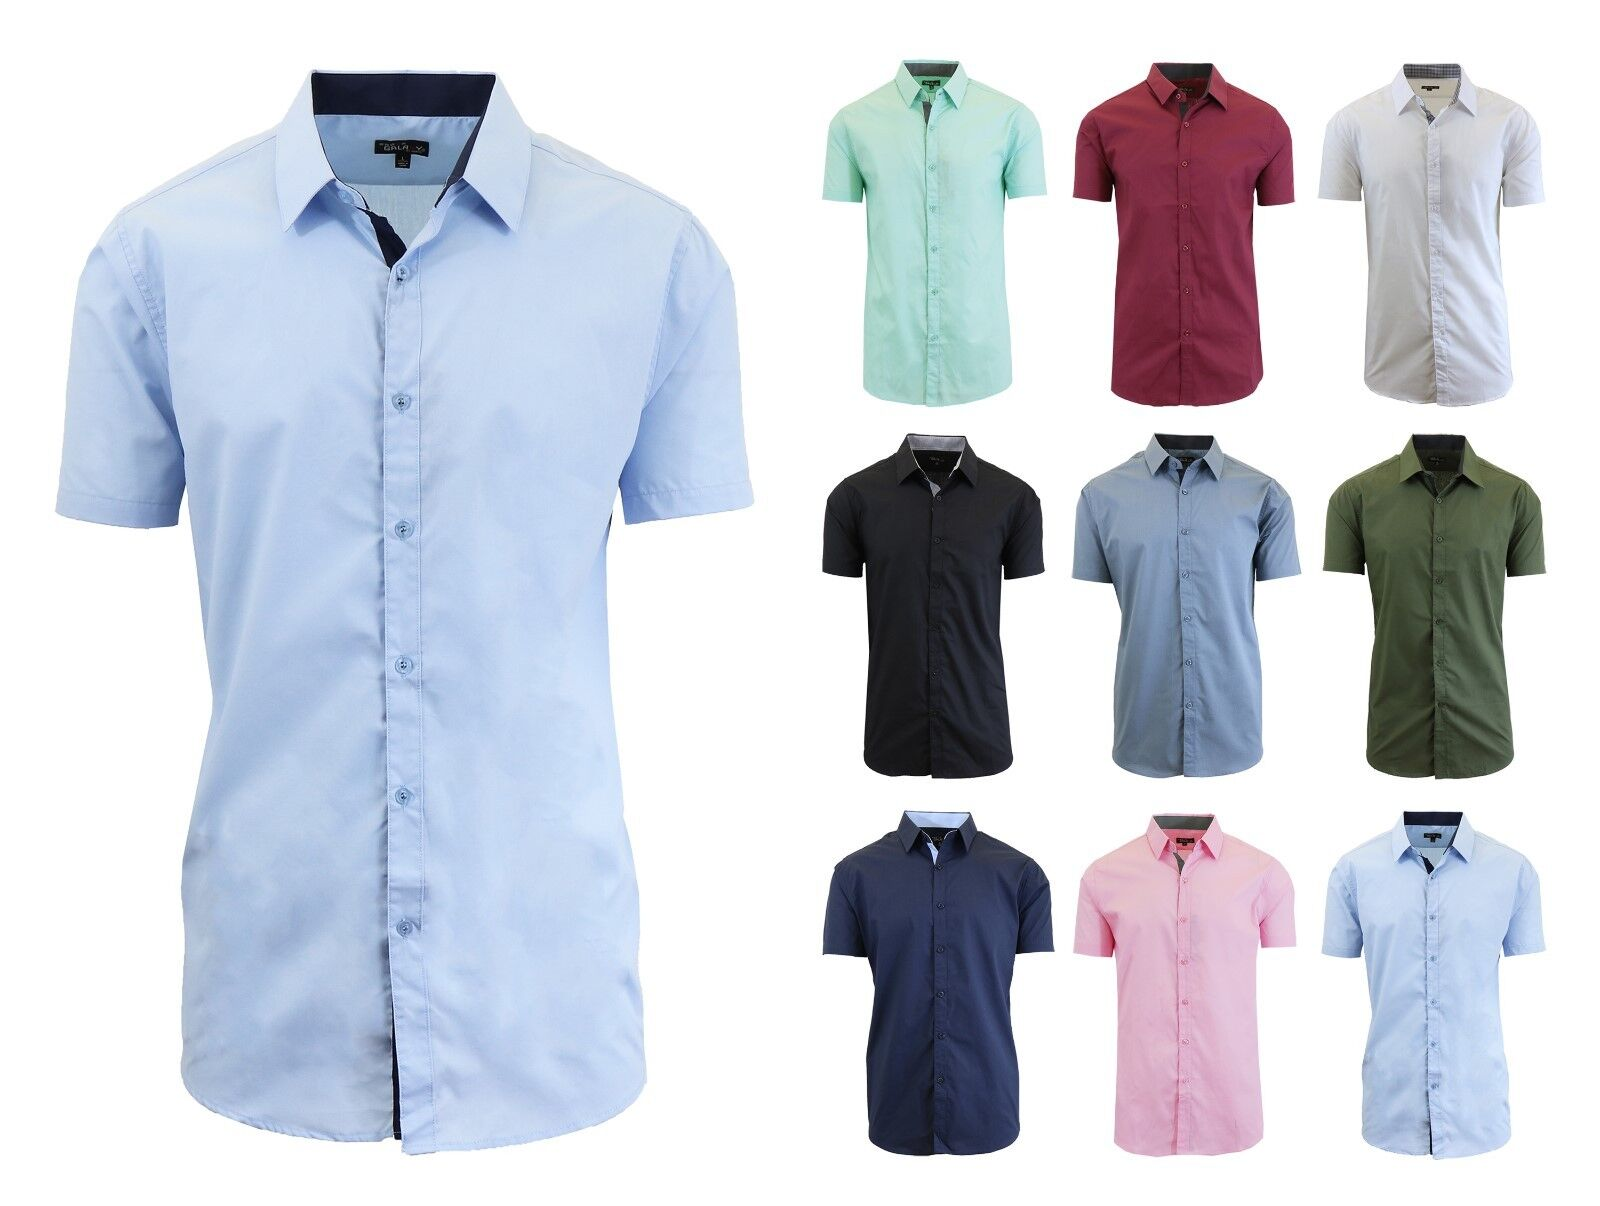 Mens Short Sleeve Dress Button Down Causal Shirt Fancy Solid Slim Fit Contrast Clothing, Shoes & Accessories